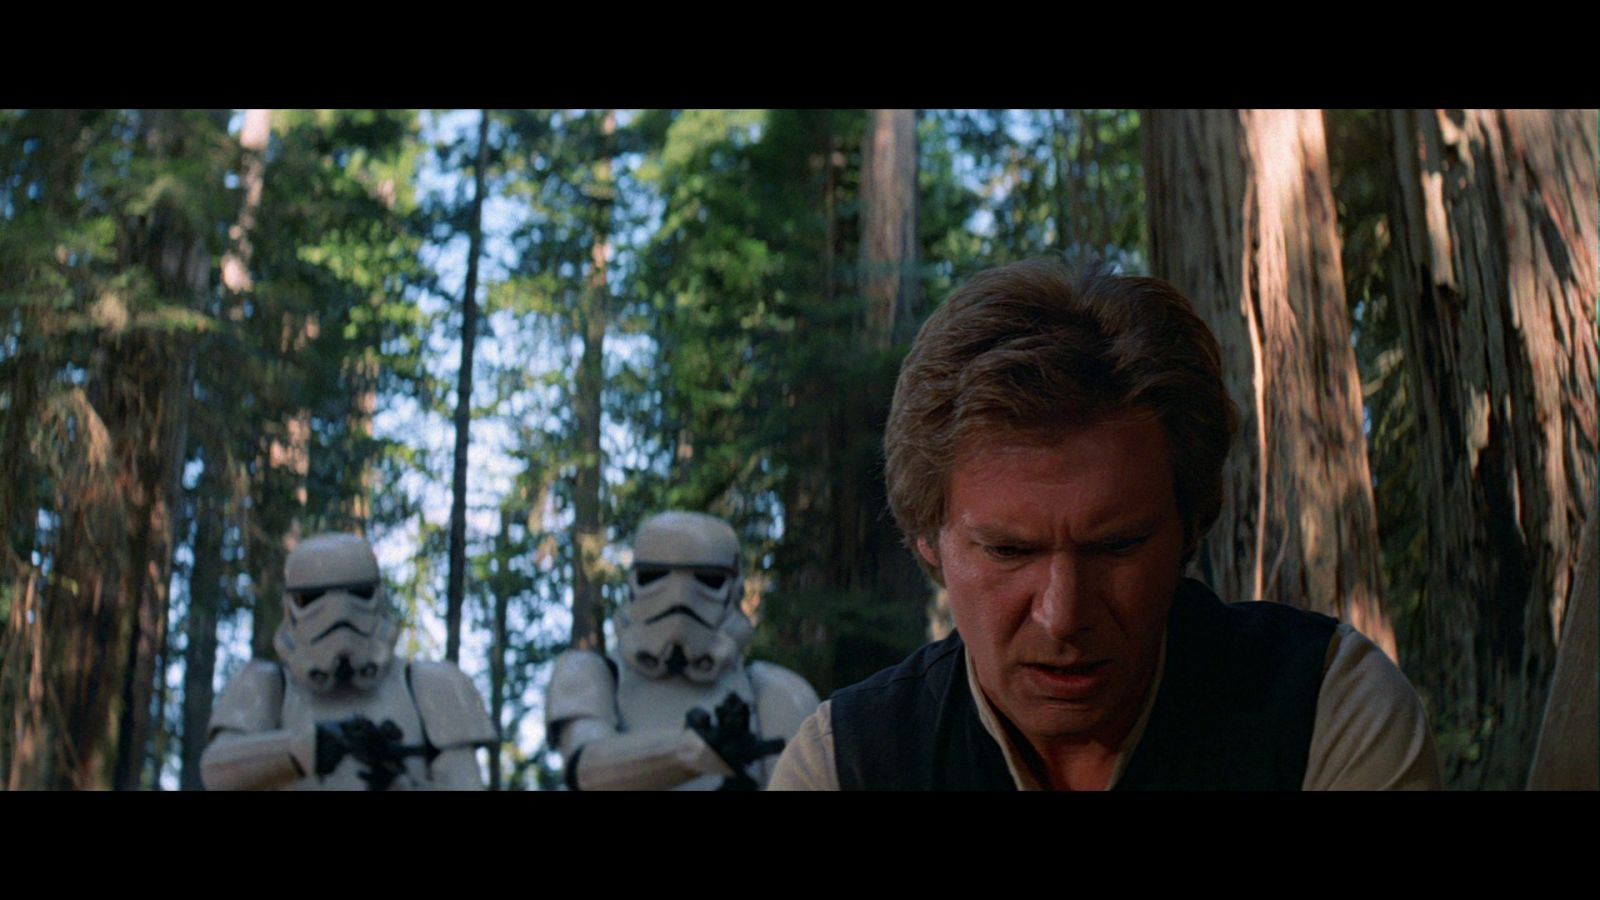 Star Wars Return of the Jedi Bluray Capture-84.jpg